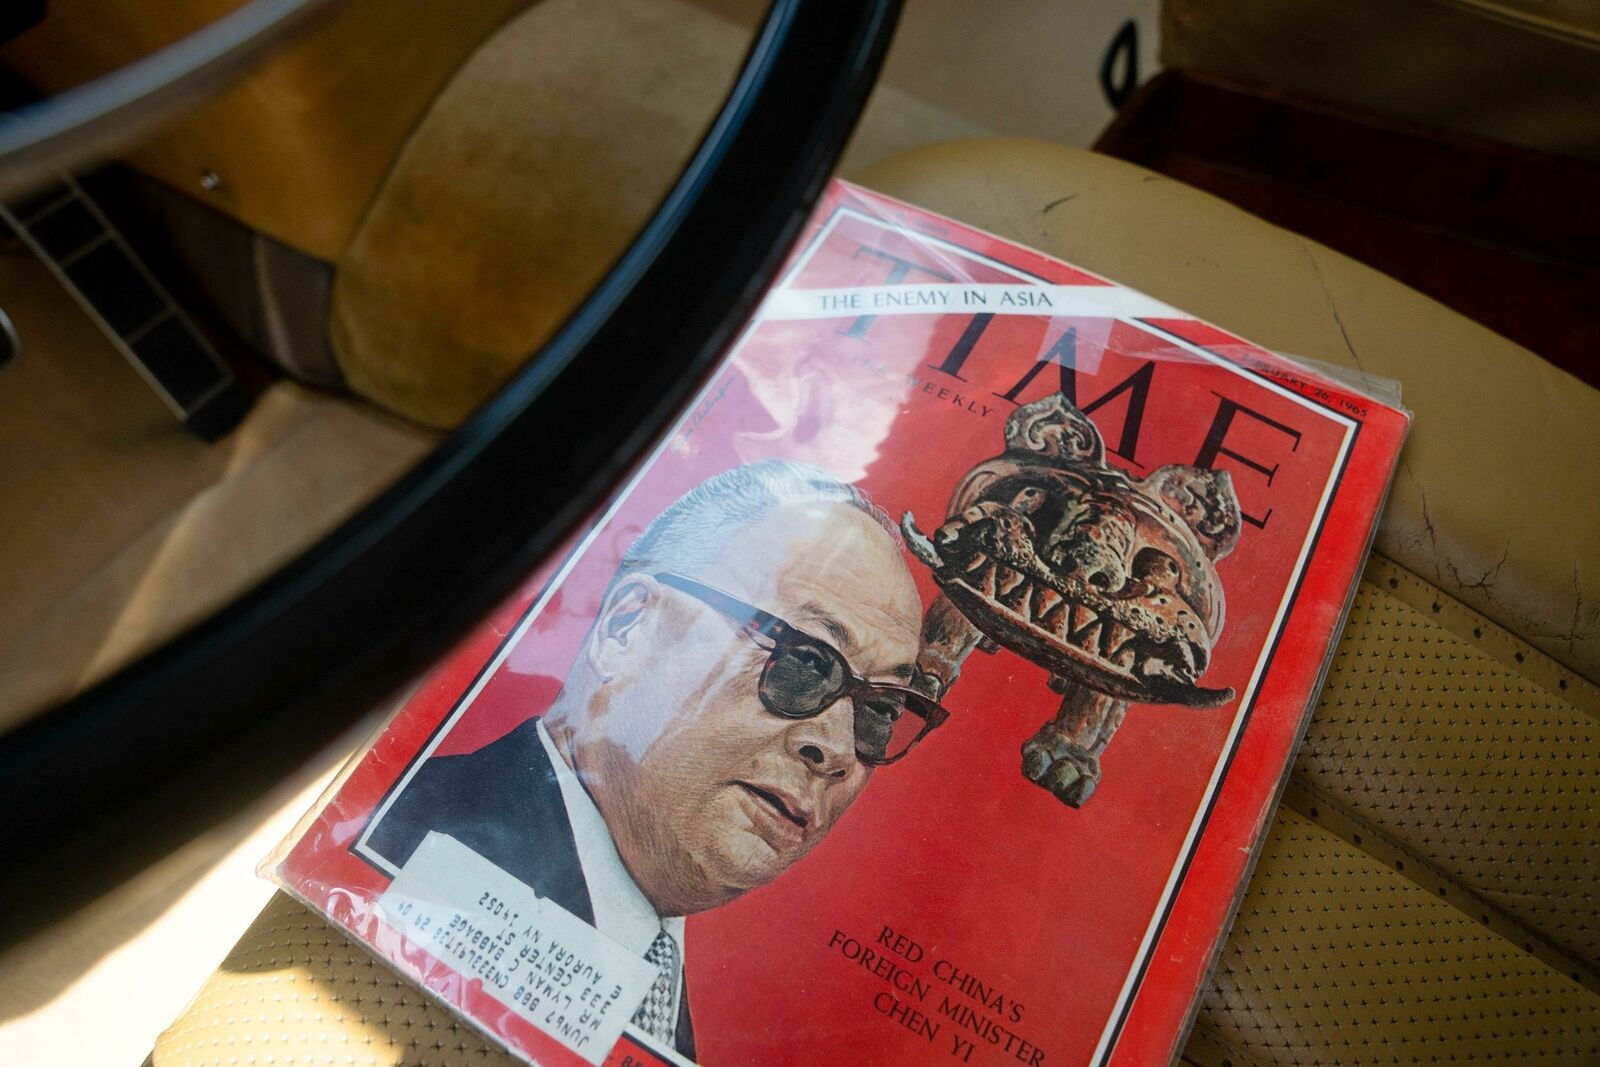 Chen Yi made the cover ofTime. He was a foreign minister.